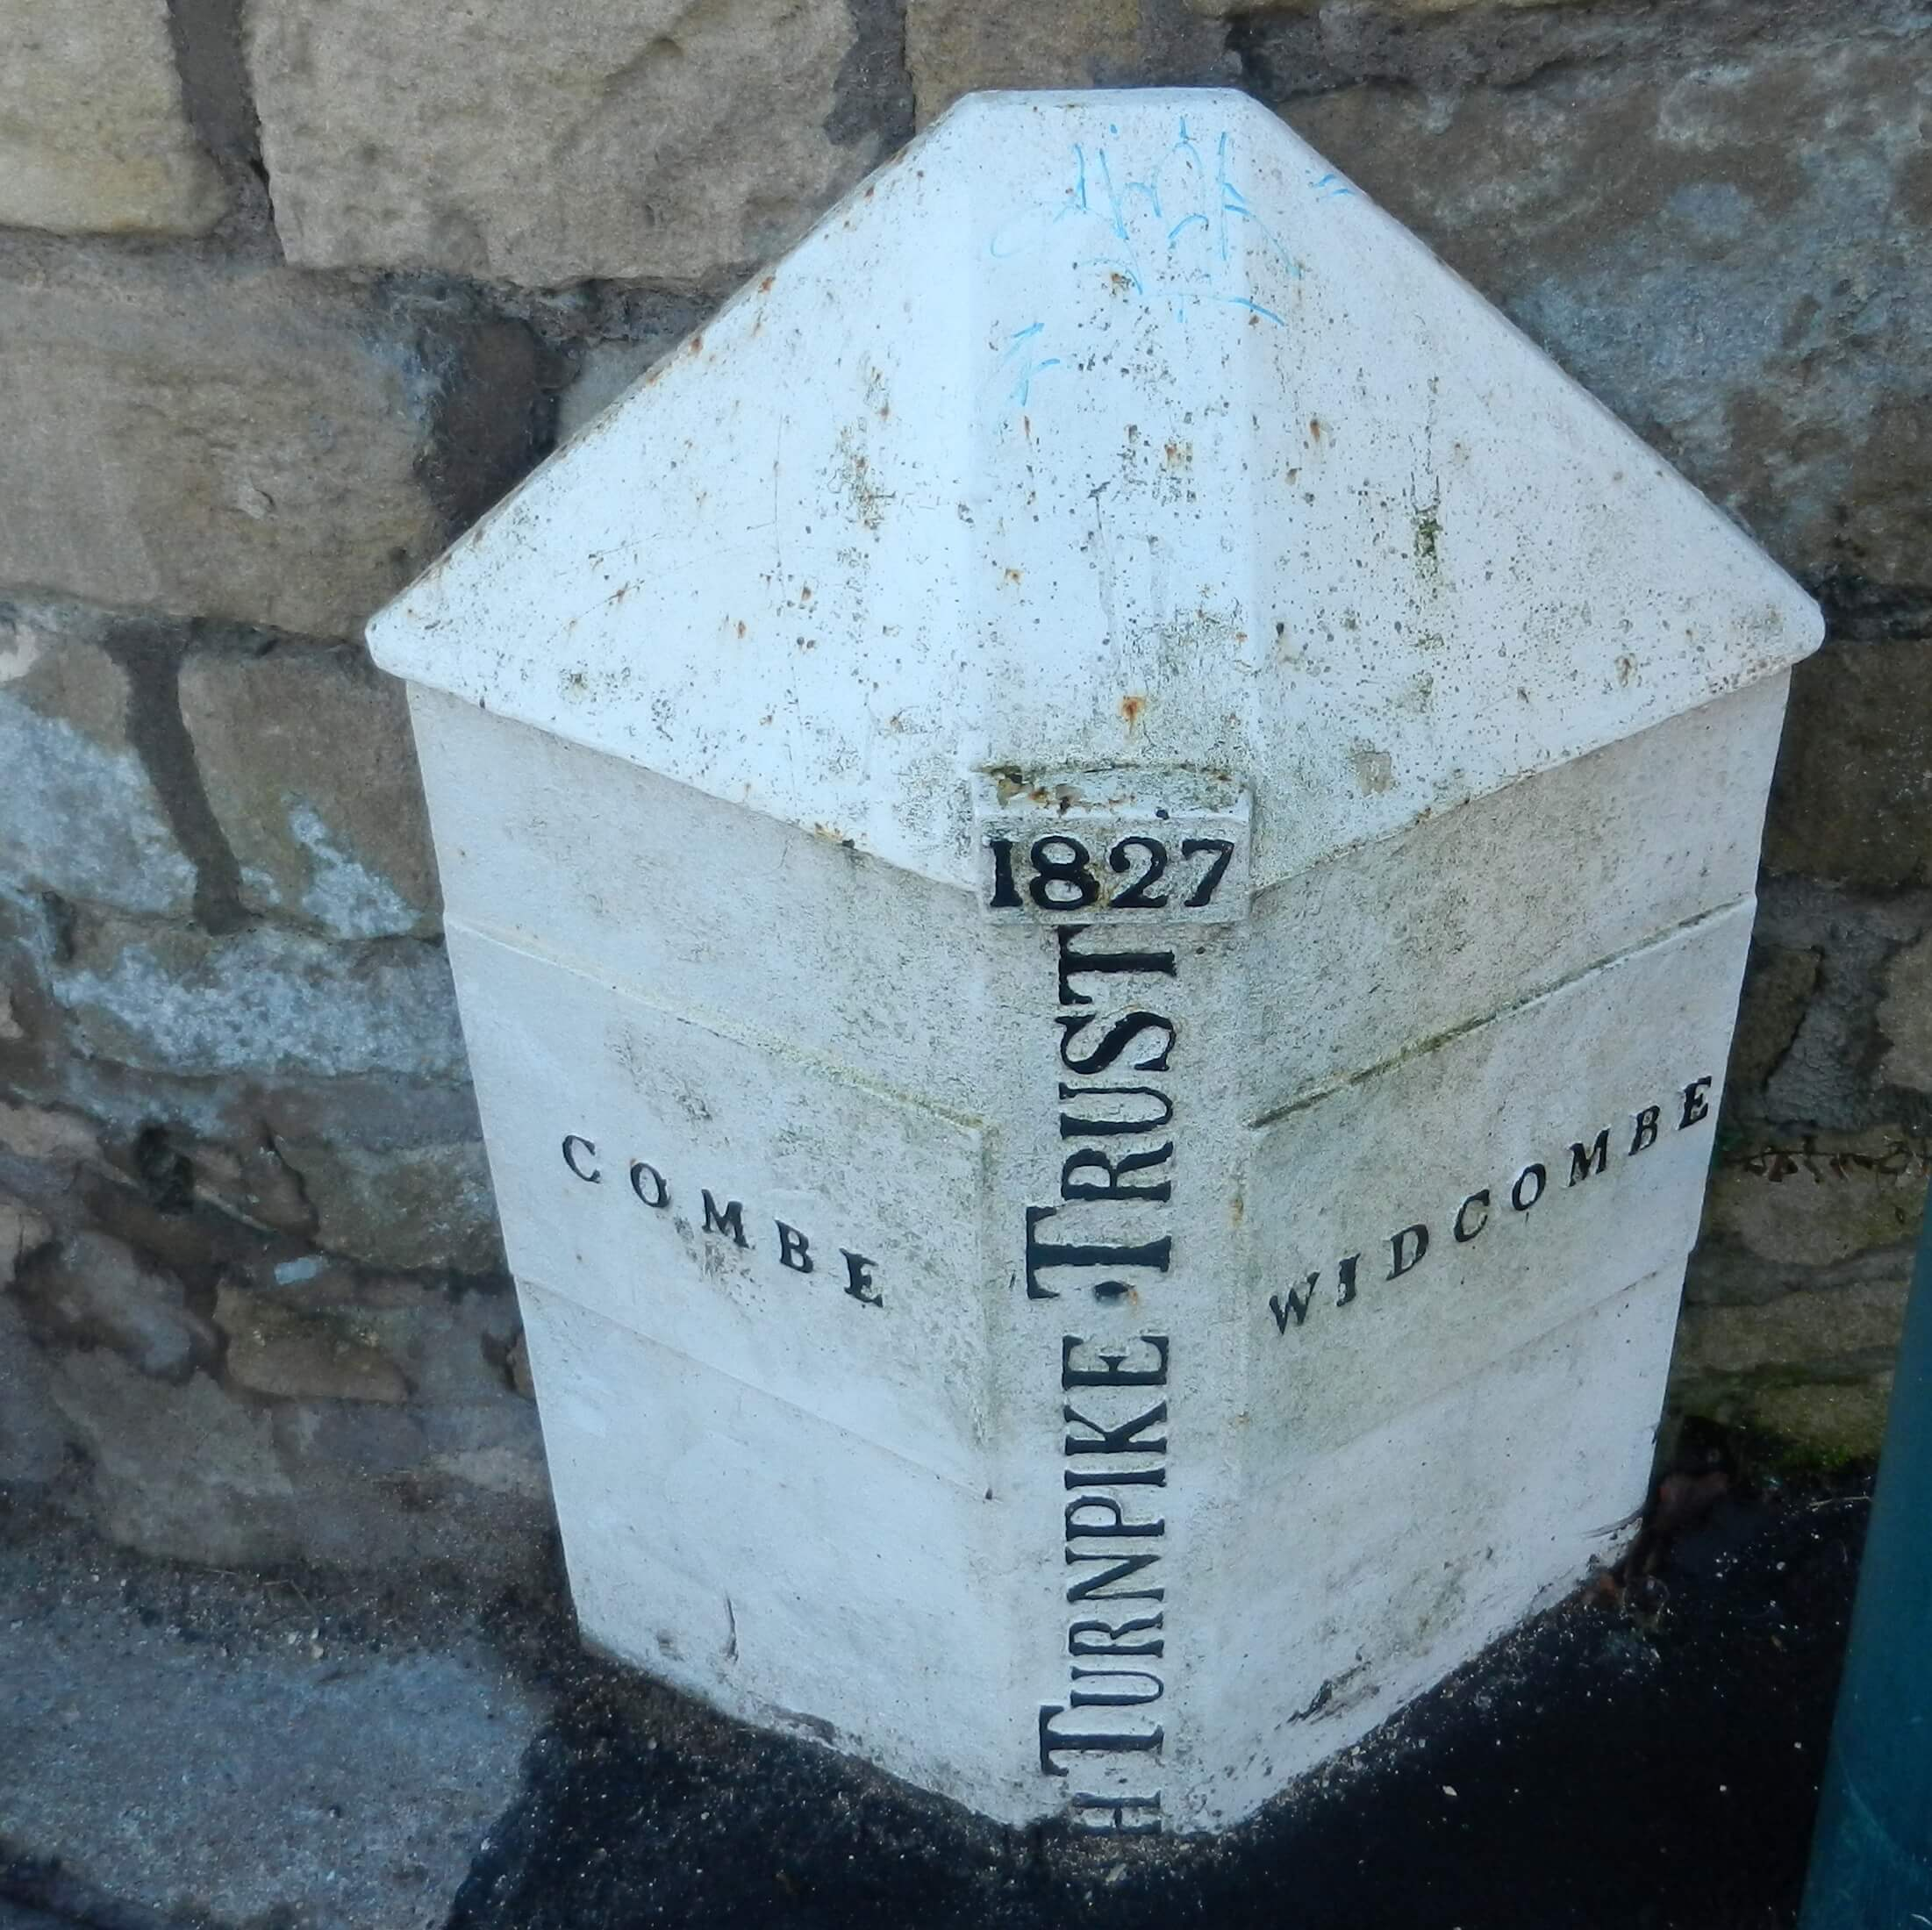 Turnpike marker on Combe Road